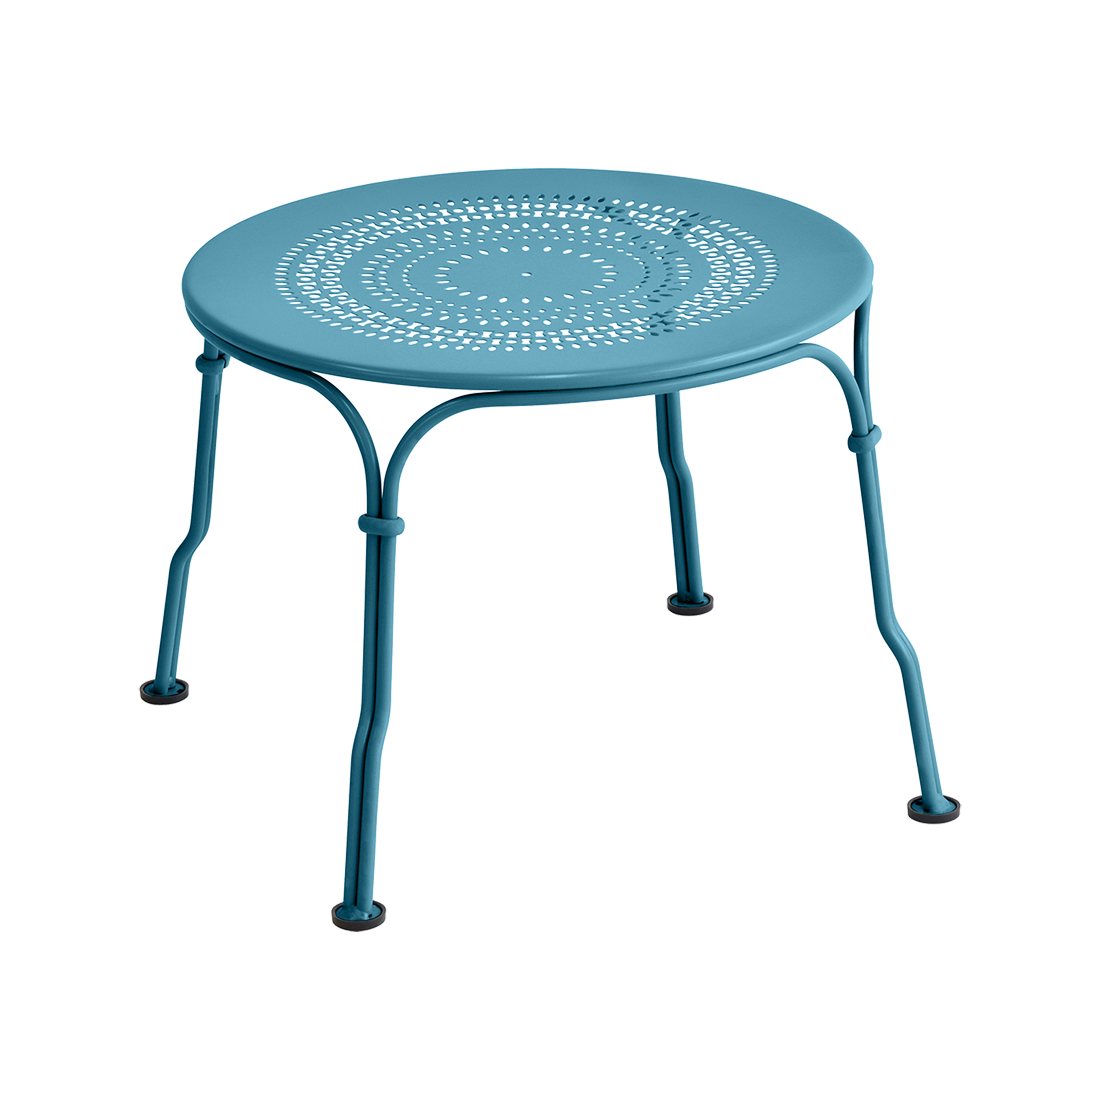 Table basse 1900 table basse jardin table basse metal - Table basse jardin metal ...